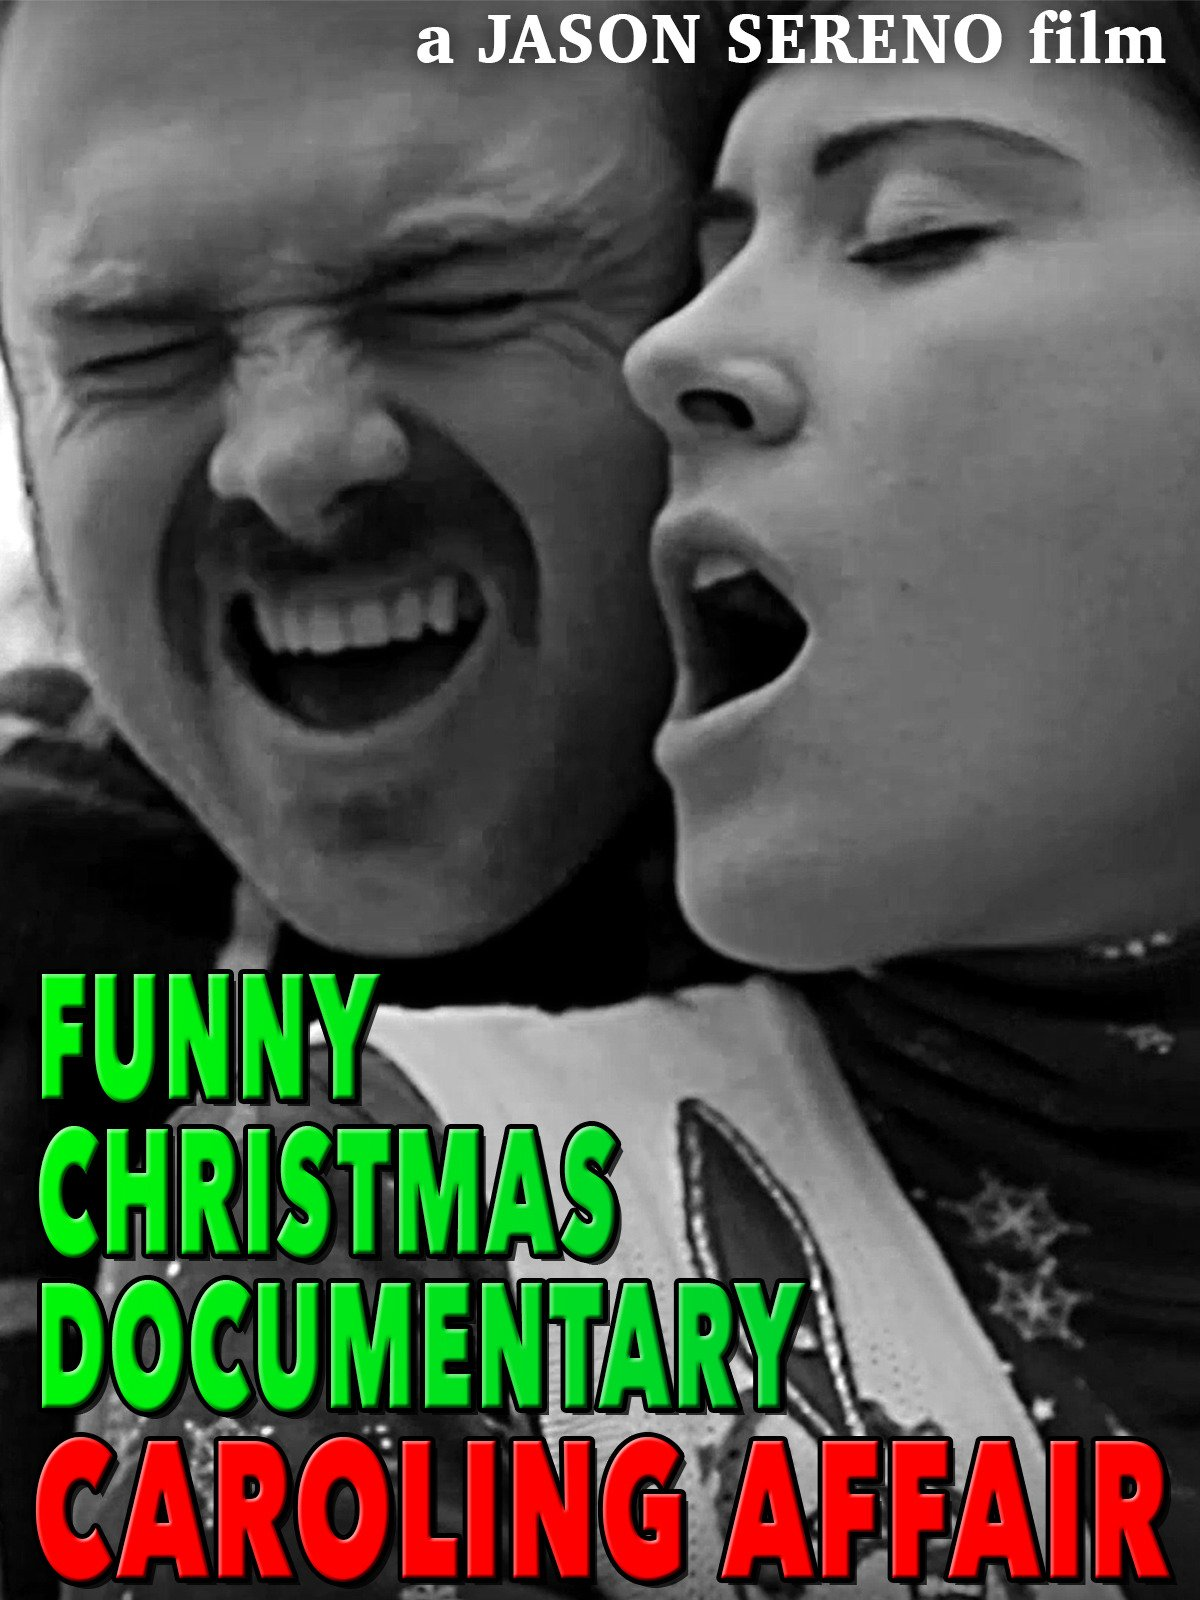 Funny Christmas Documentary: Caroling Affair